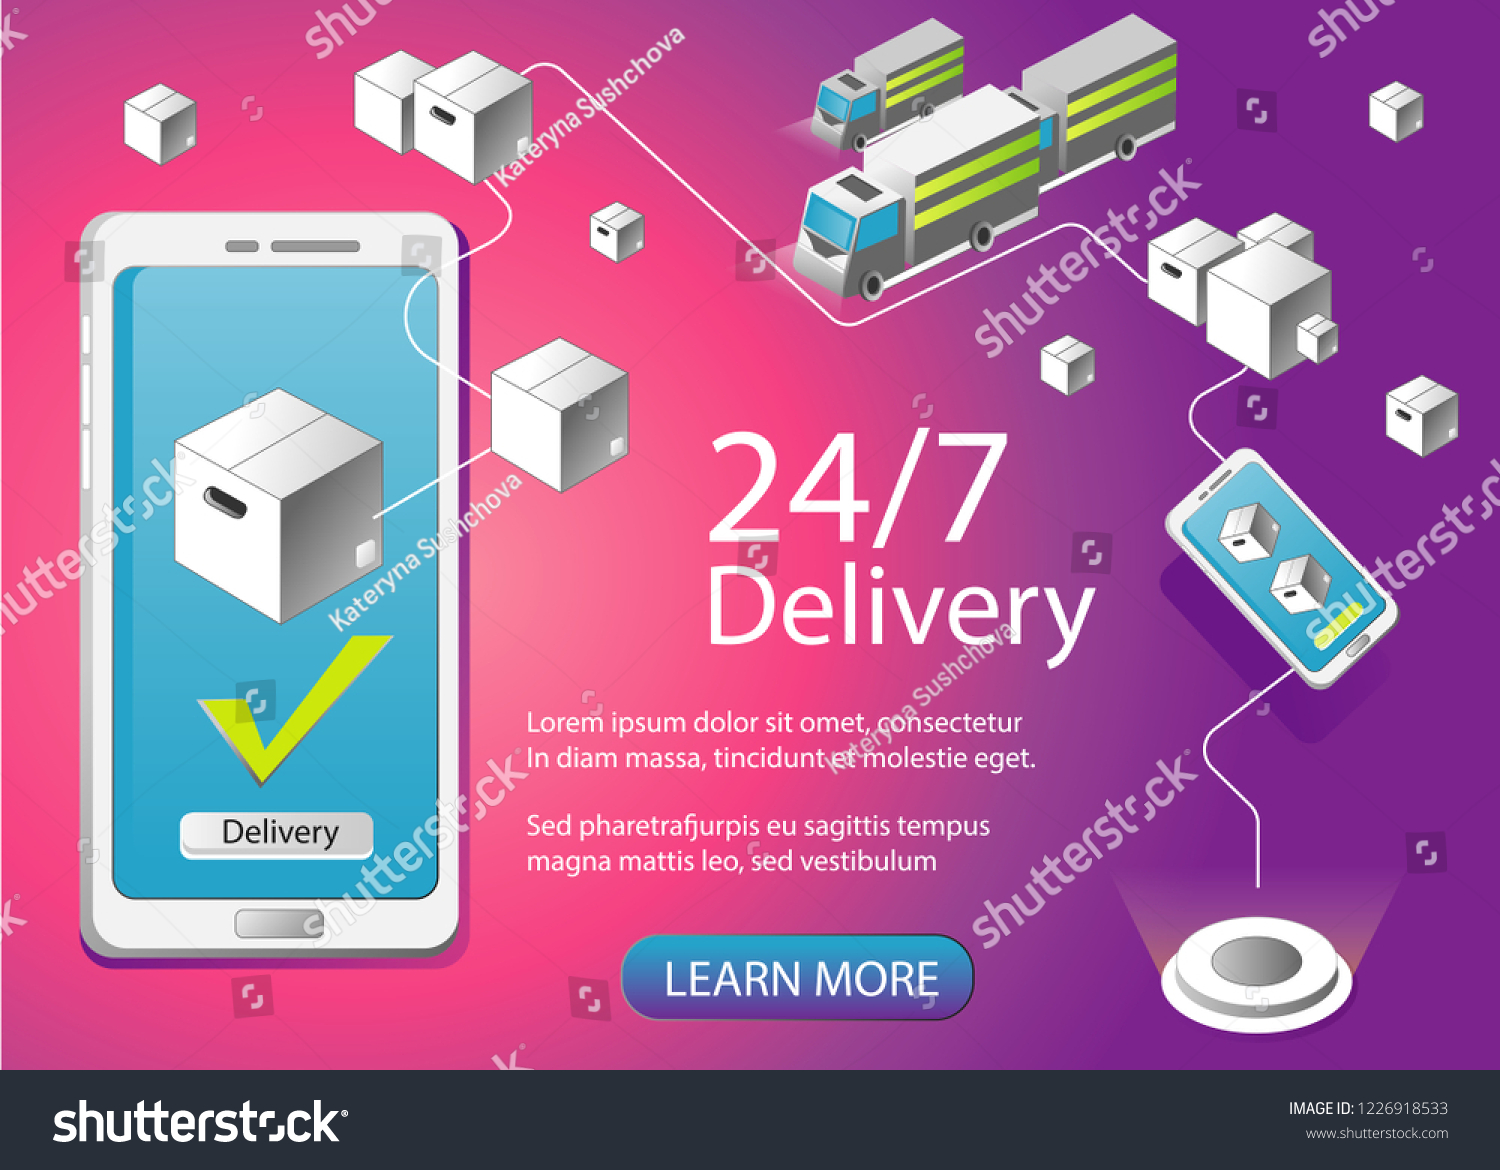 Courier Delivery Order Fast Page Banner Stock Vector (Royalty Free